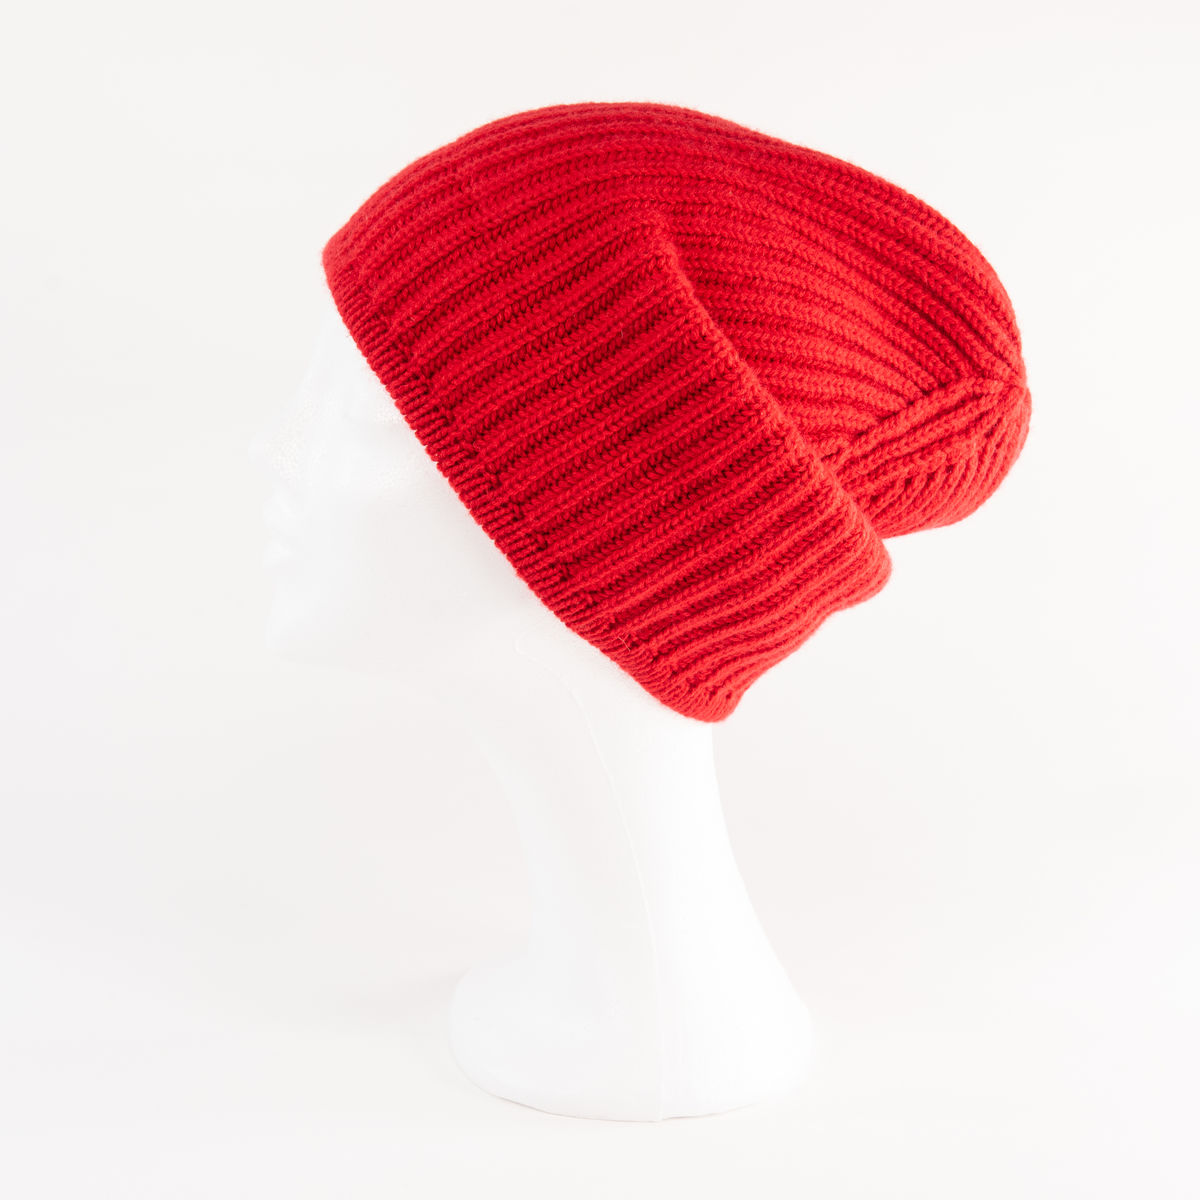 Classic Ribbed Beanie Cuff - RED! - product images  of